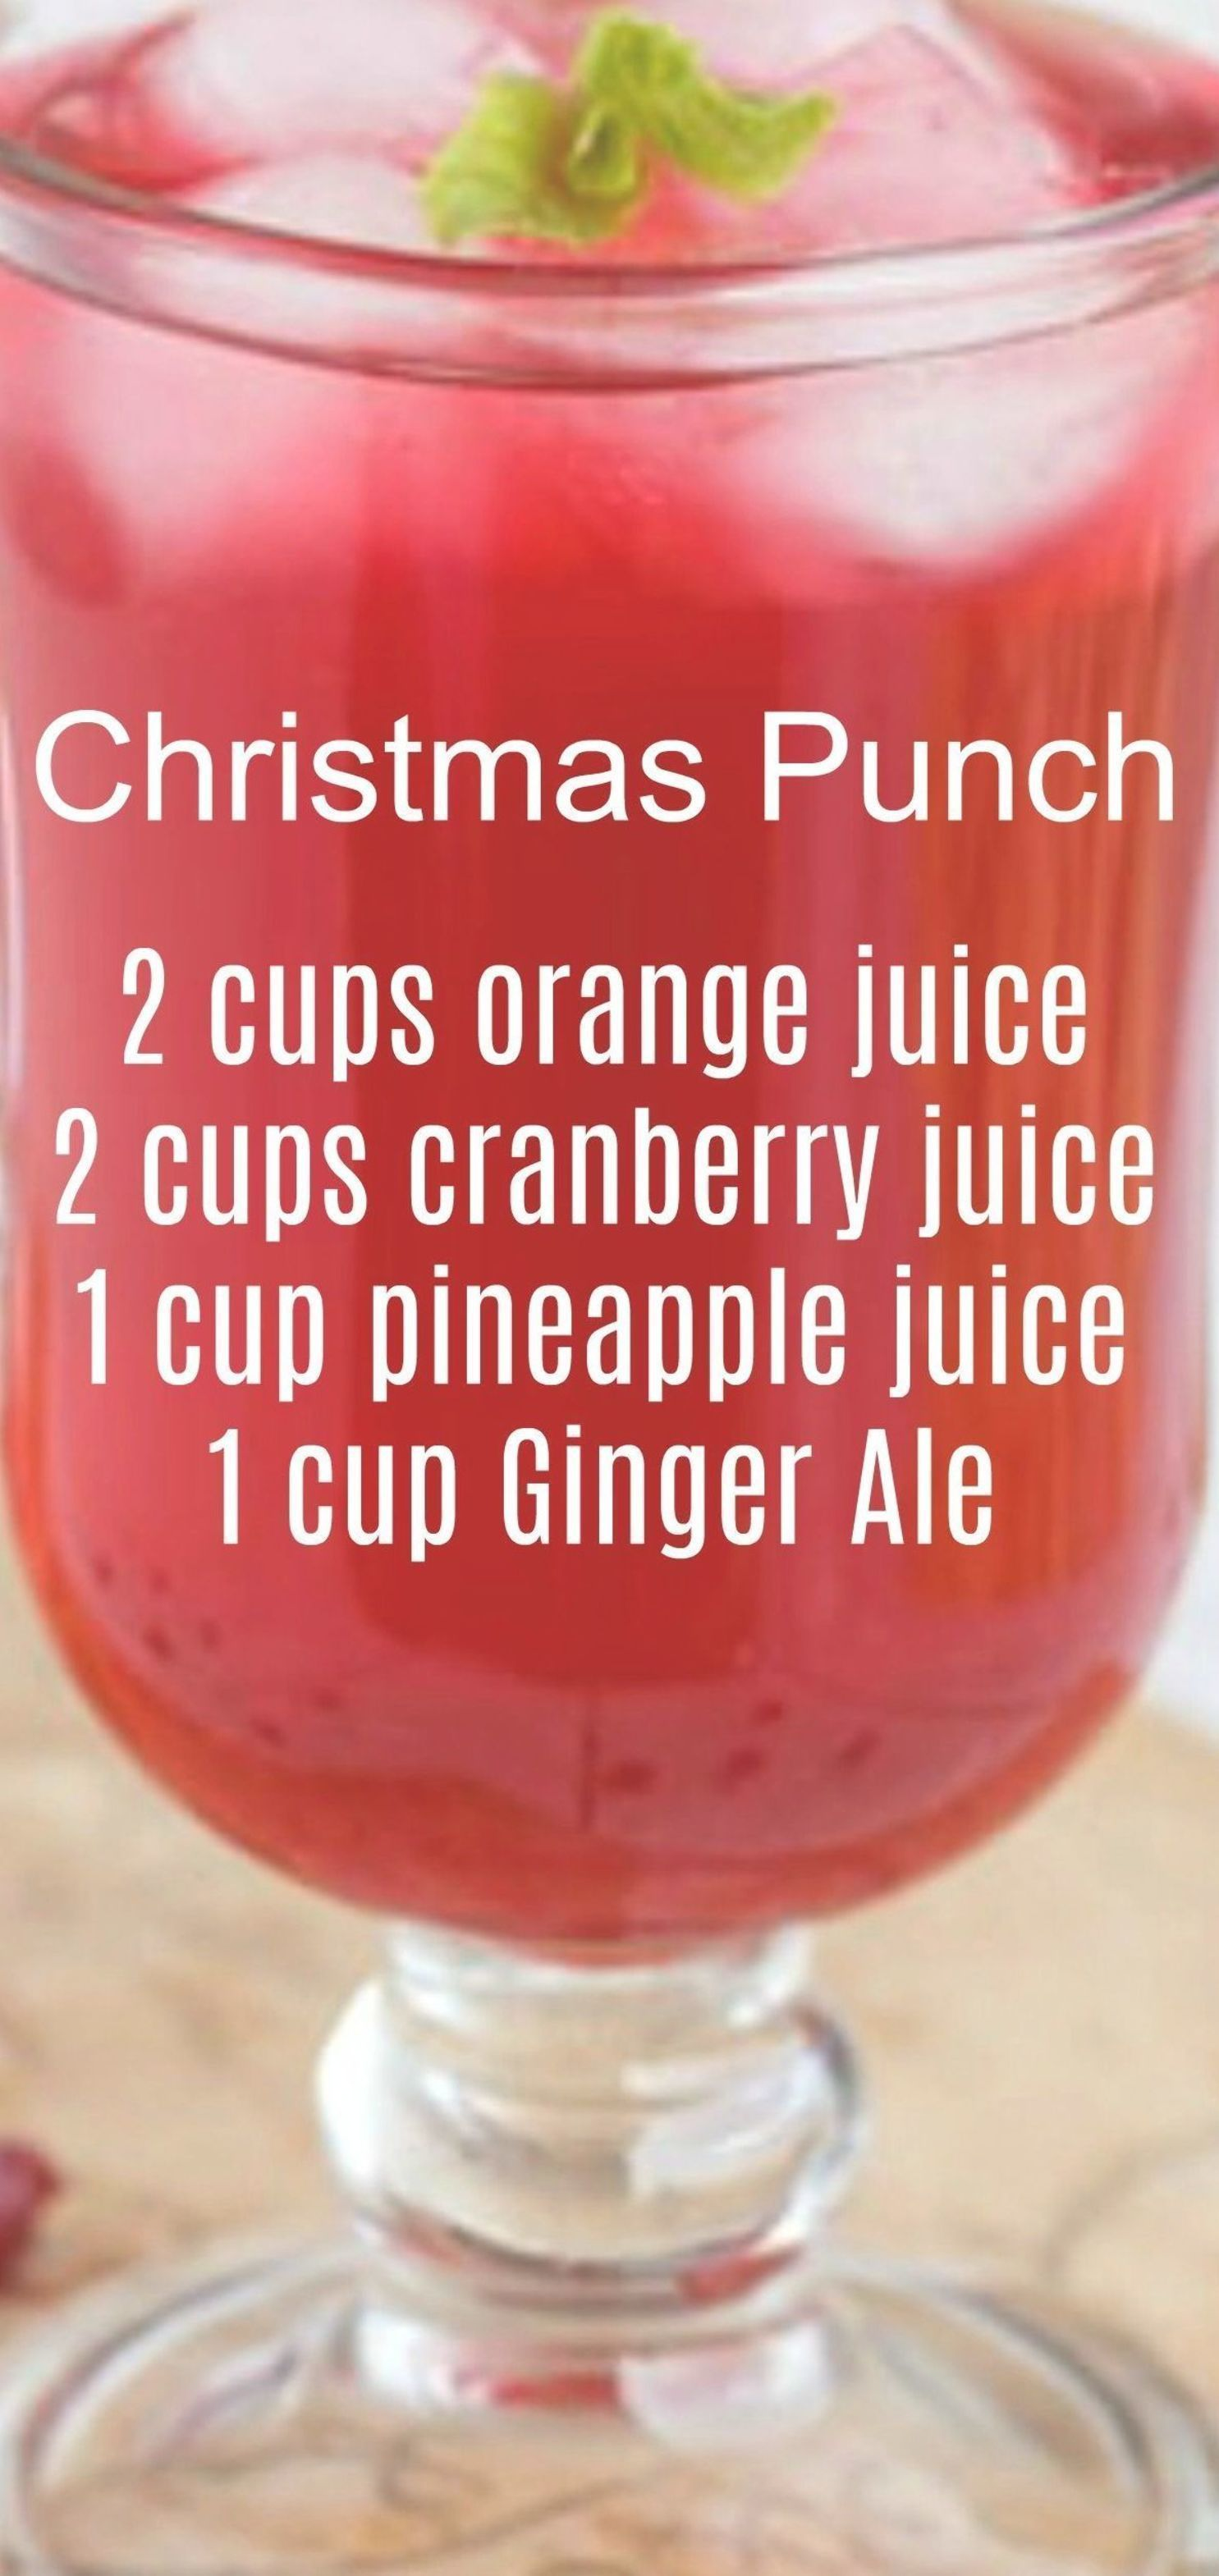 Christmas Punch ~ so simple to make and delicious! We like to serve this punch on Christmas morning. #christmasmorningpunch Christmas Punch ~ so simple to make and delicious! We like to serve this punch on Christmas morning. #christmasmorningpunch Christmas Punch ~ so simple to make and delicious! We like to serve this punch on Christmas morning. #christmasmorningpunch Christmas Punch ~ so simple to make and delicious! We like to serve this punch on Christmas morning. #christmasmorningpunch Chri #christmasmorningpunch